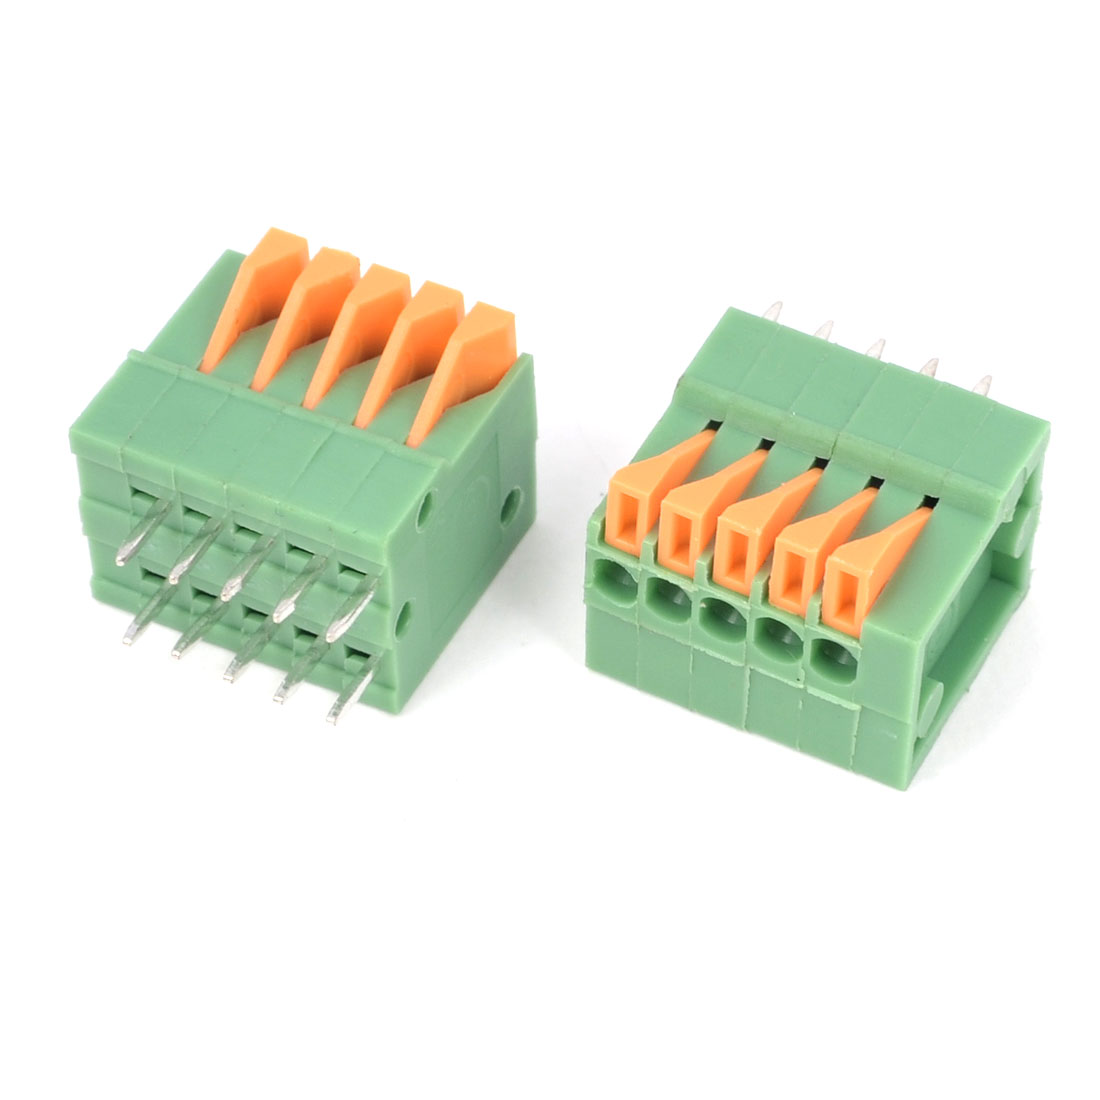 2PCS 150V 2A 2.54mm Pitch 5P Pins Double Dual Row PCB Screwless Terminal Block Connector Green